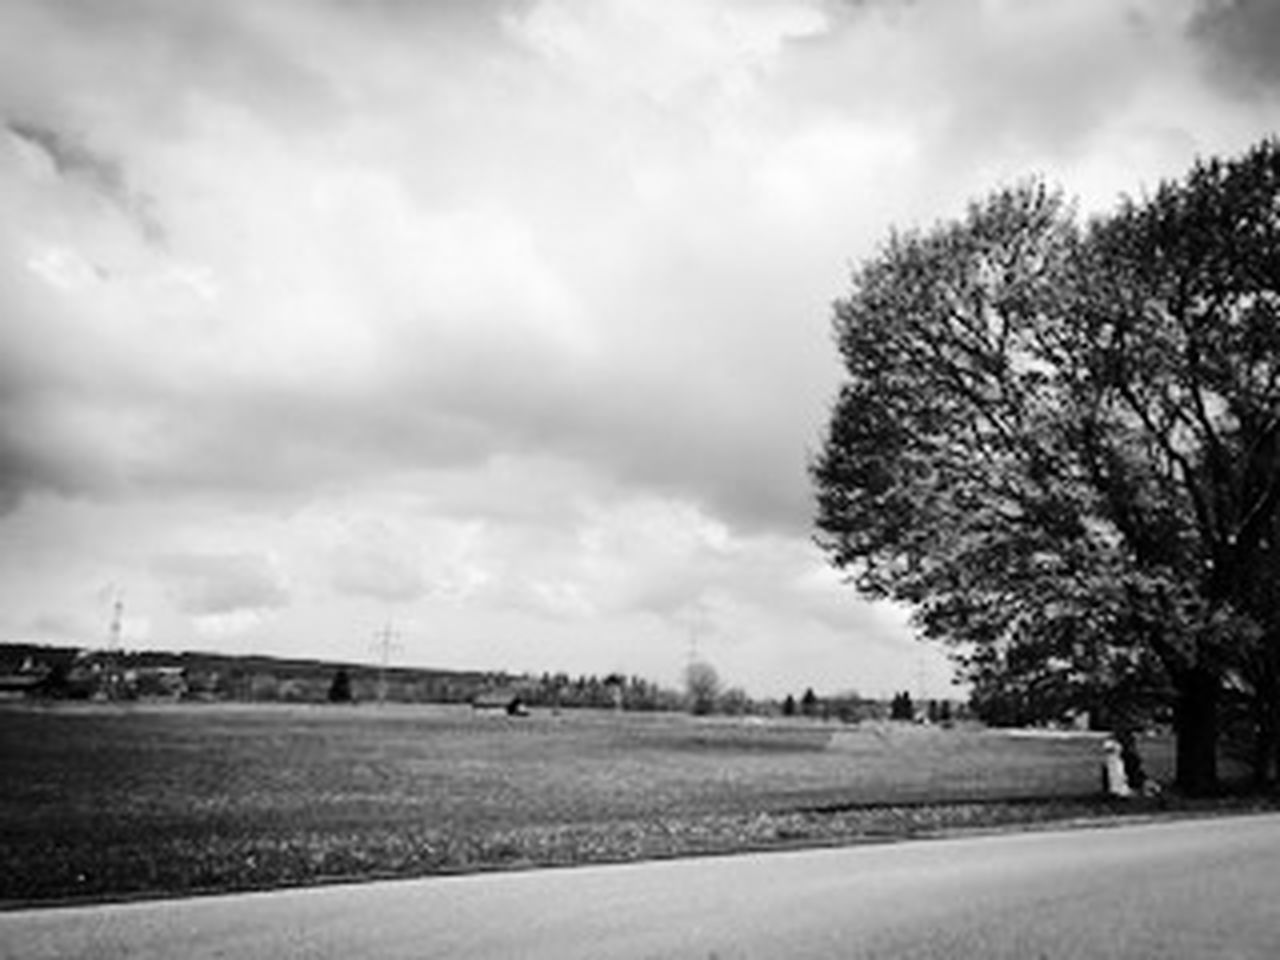 cloud - sky, tree, rural scene, agriculture, nature, scenics, field, sky, outdoors, landscape, no people, day, city